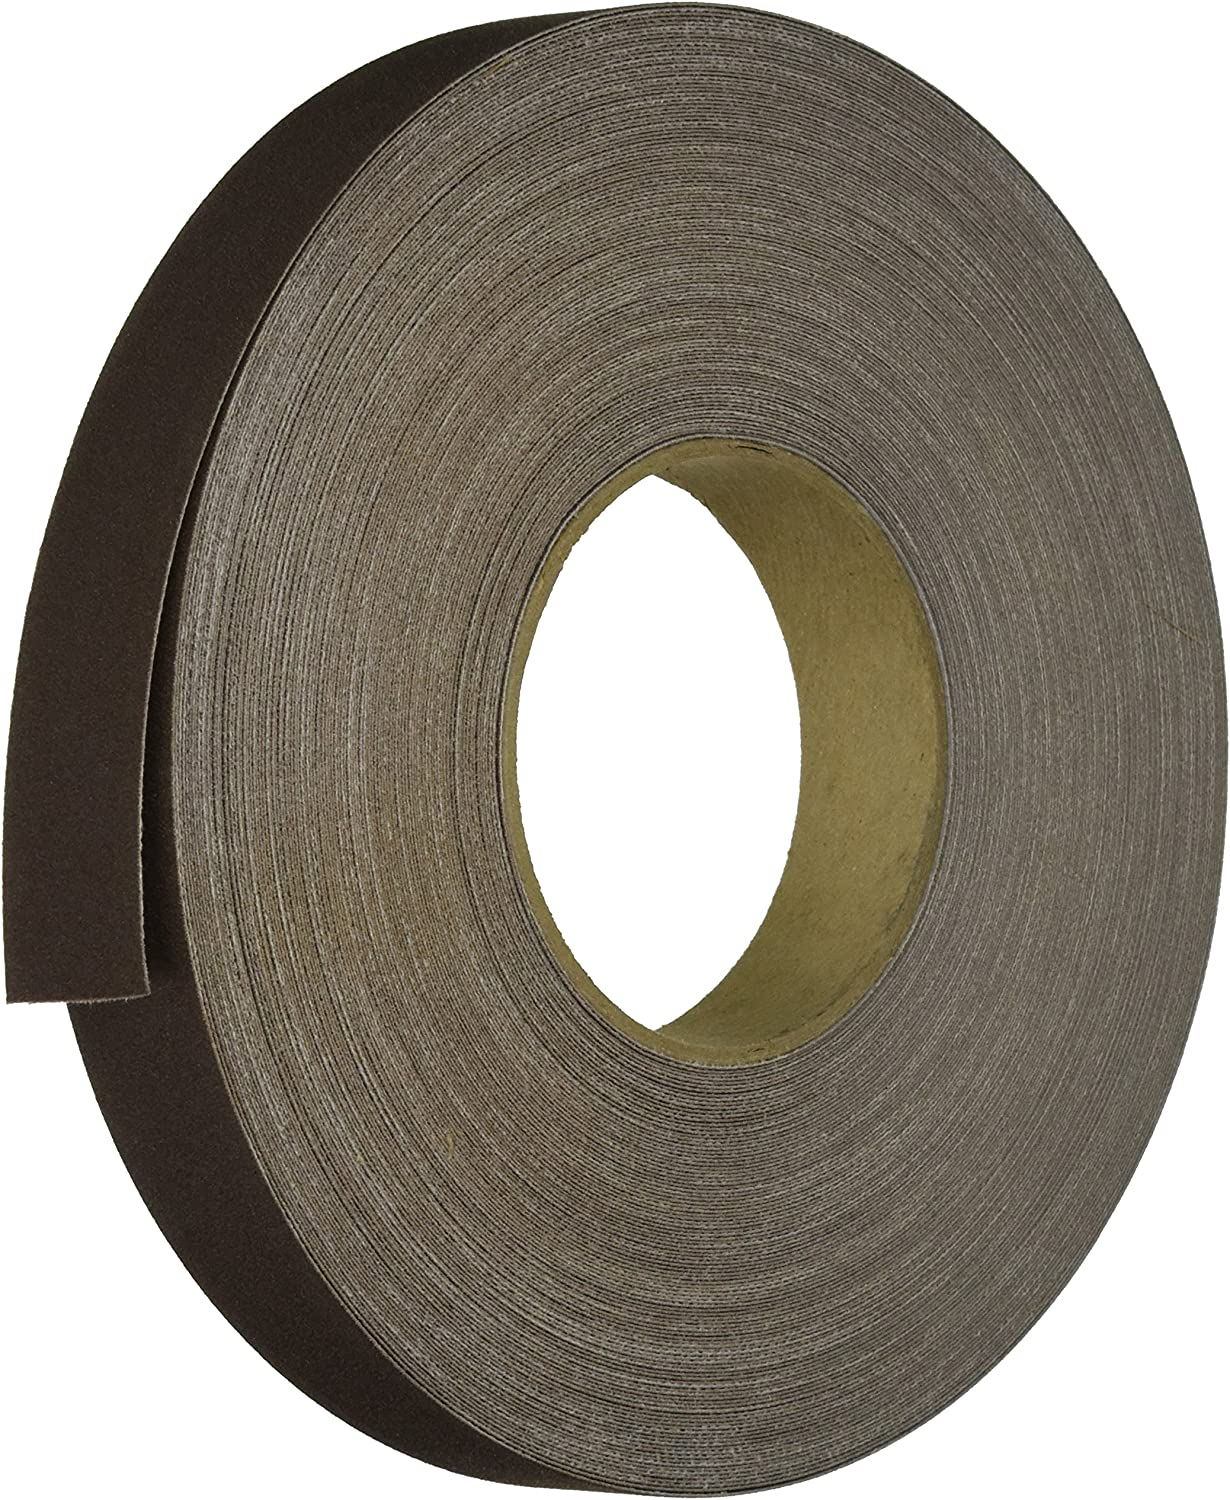 DEWALT DANG221501 1-Inch 150g HP Shop Roll by 50 yd